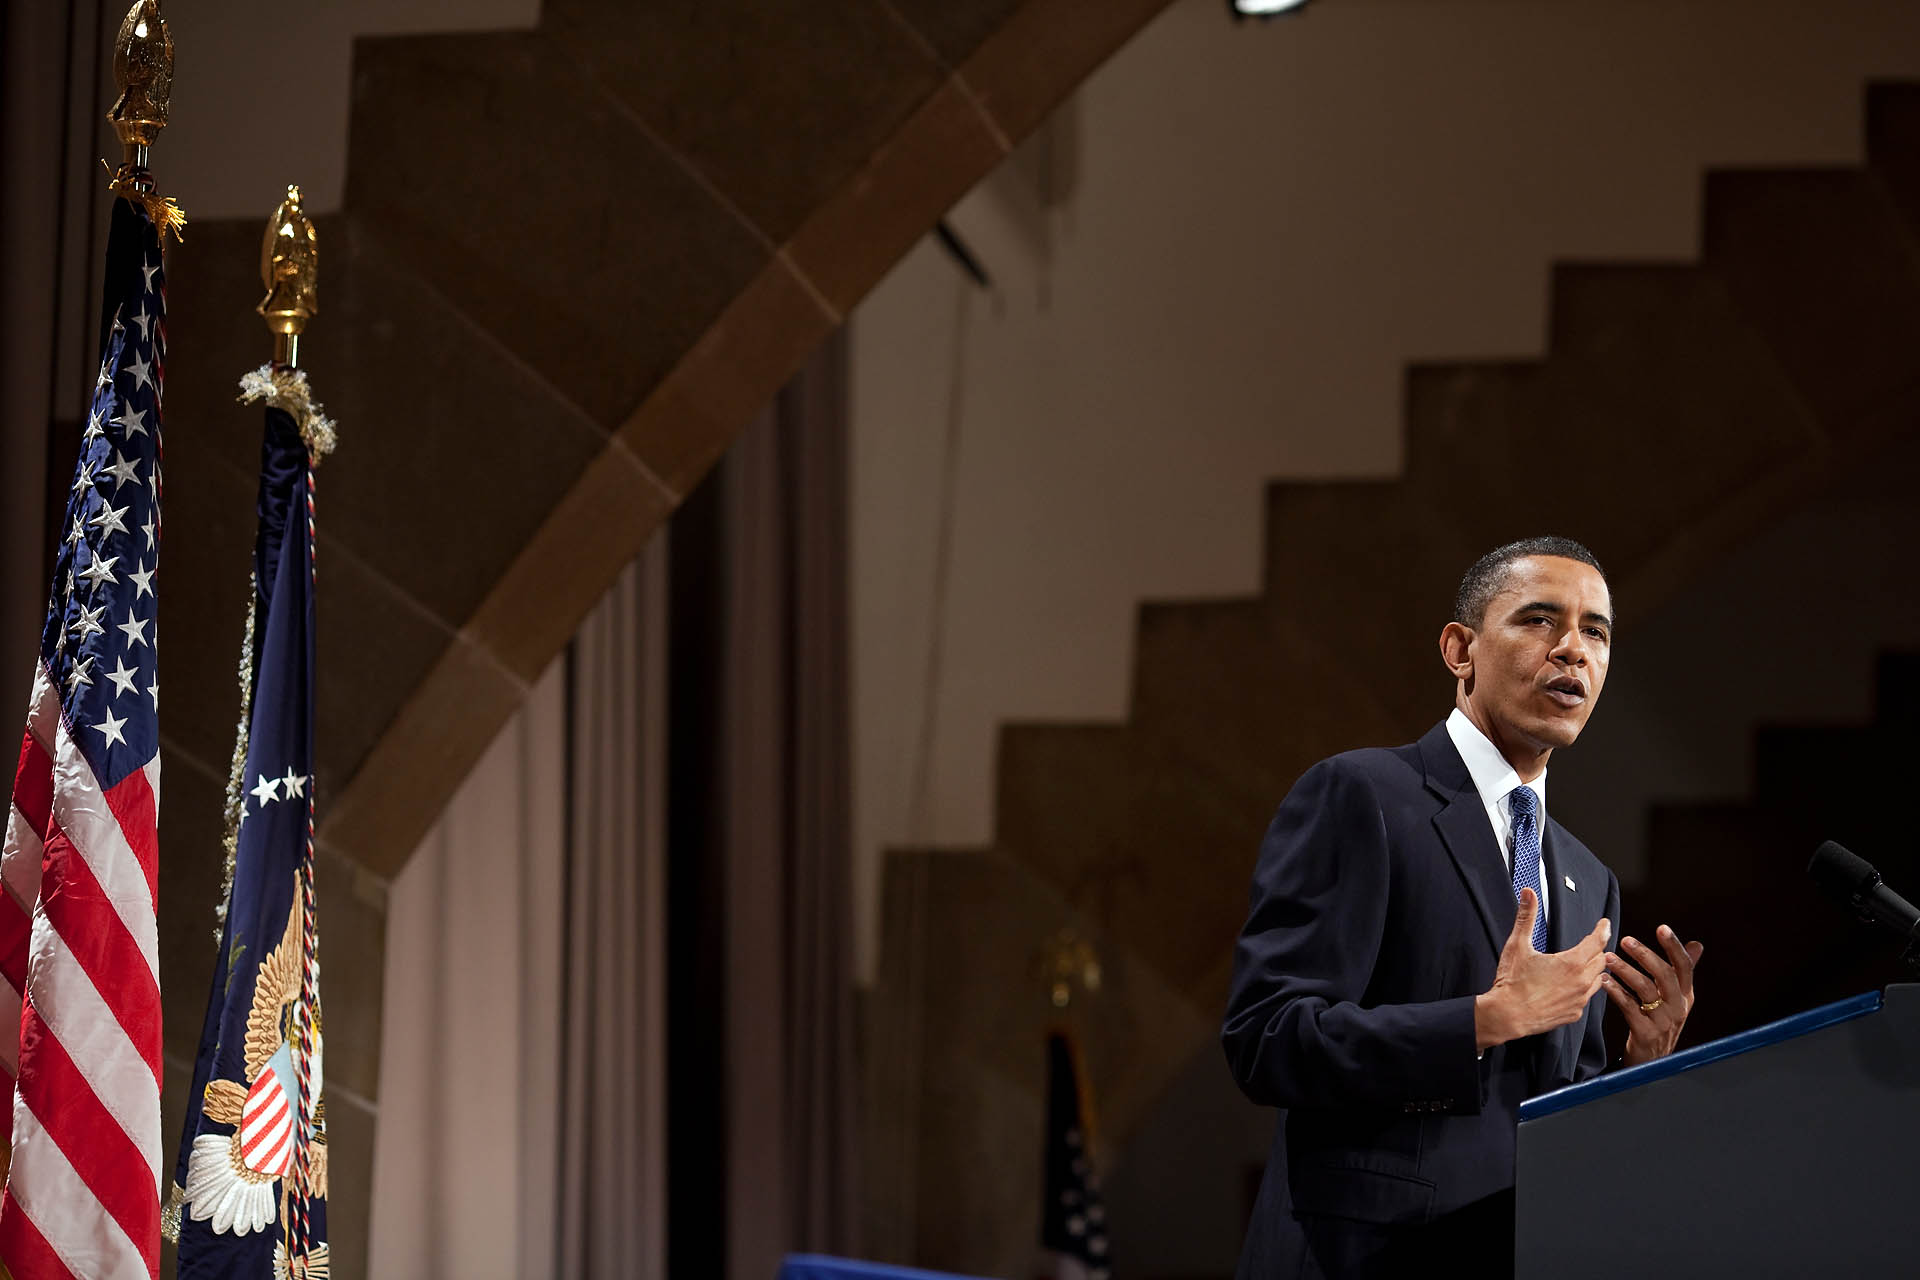 President Barack Obama delivers remarks on Wall Street reform